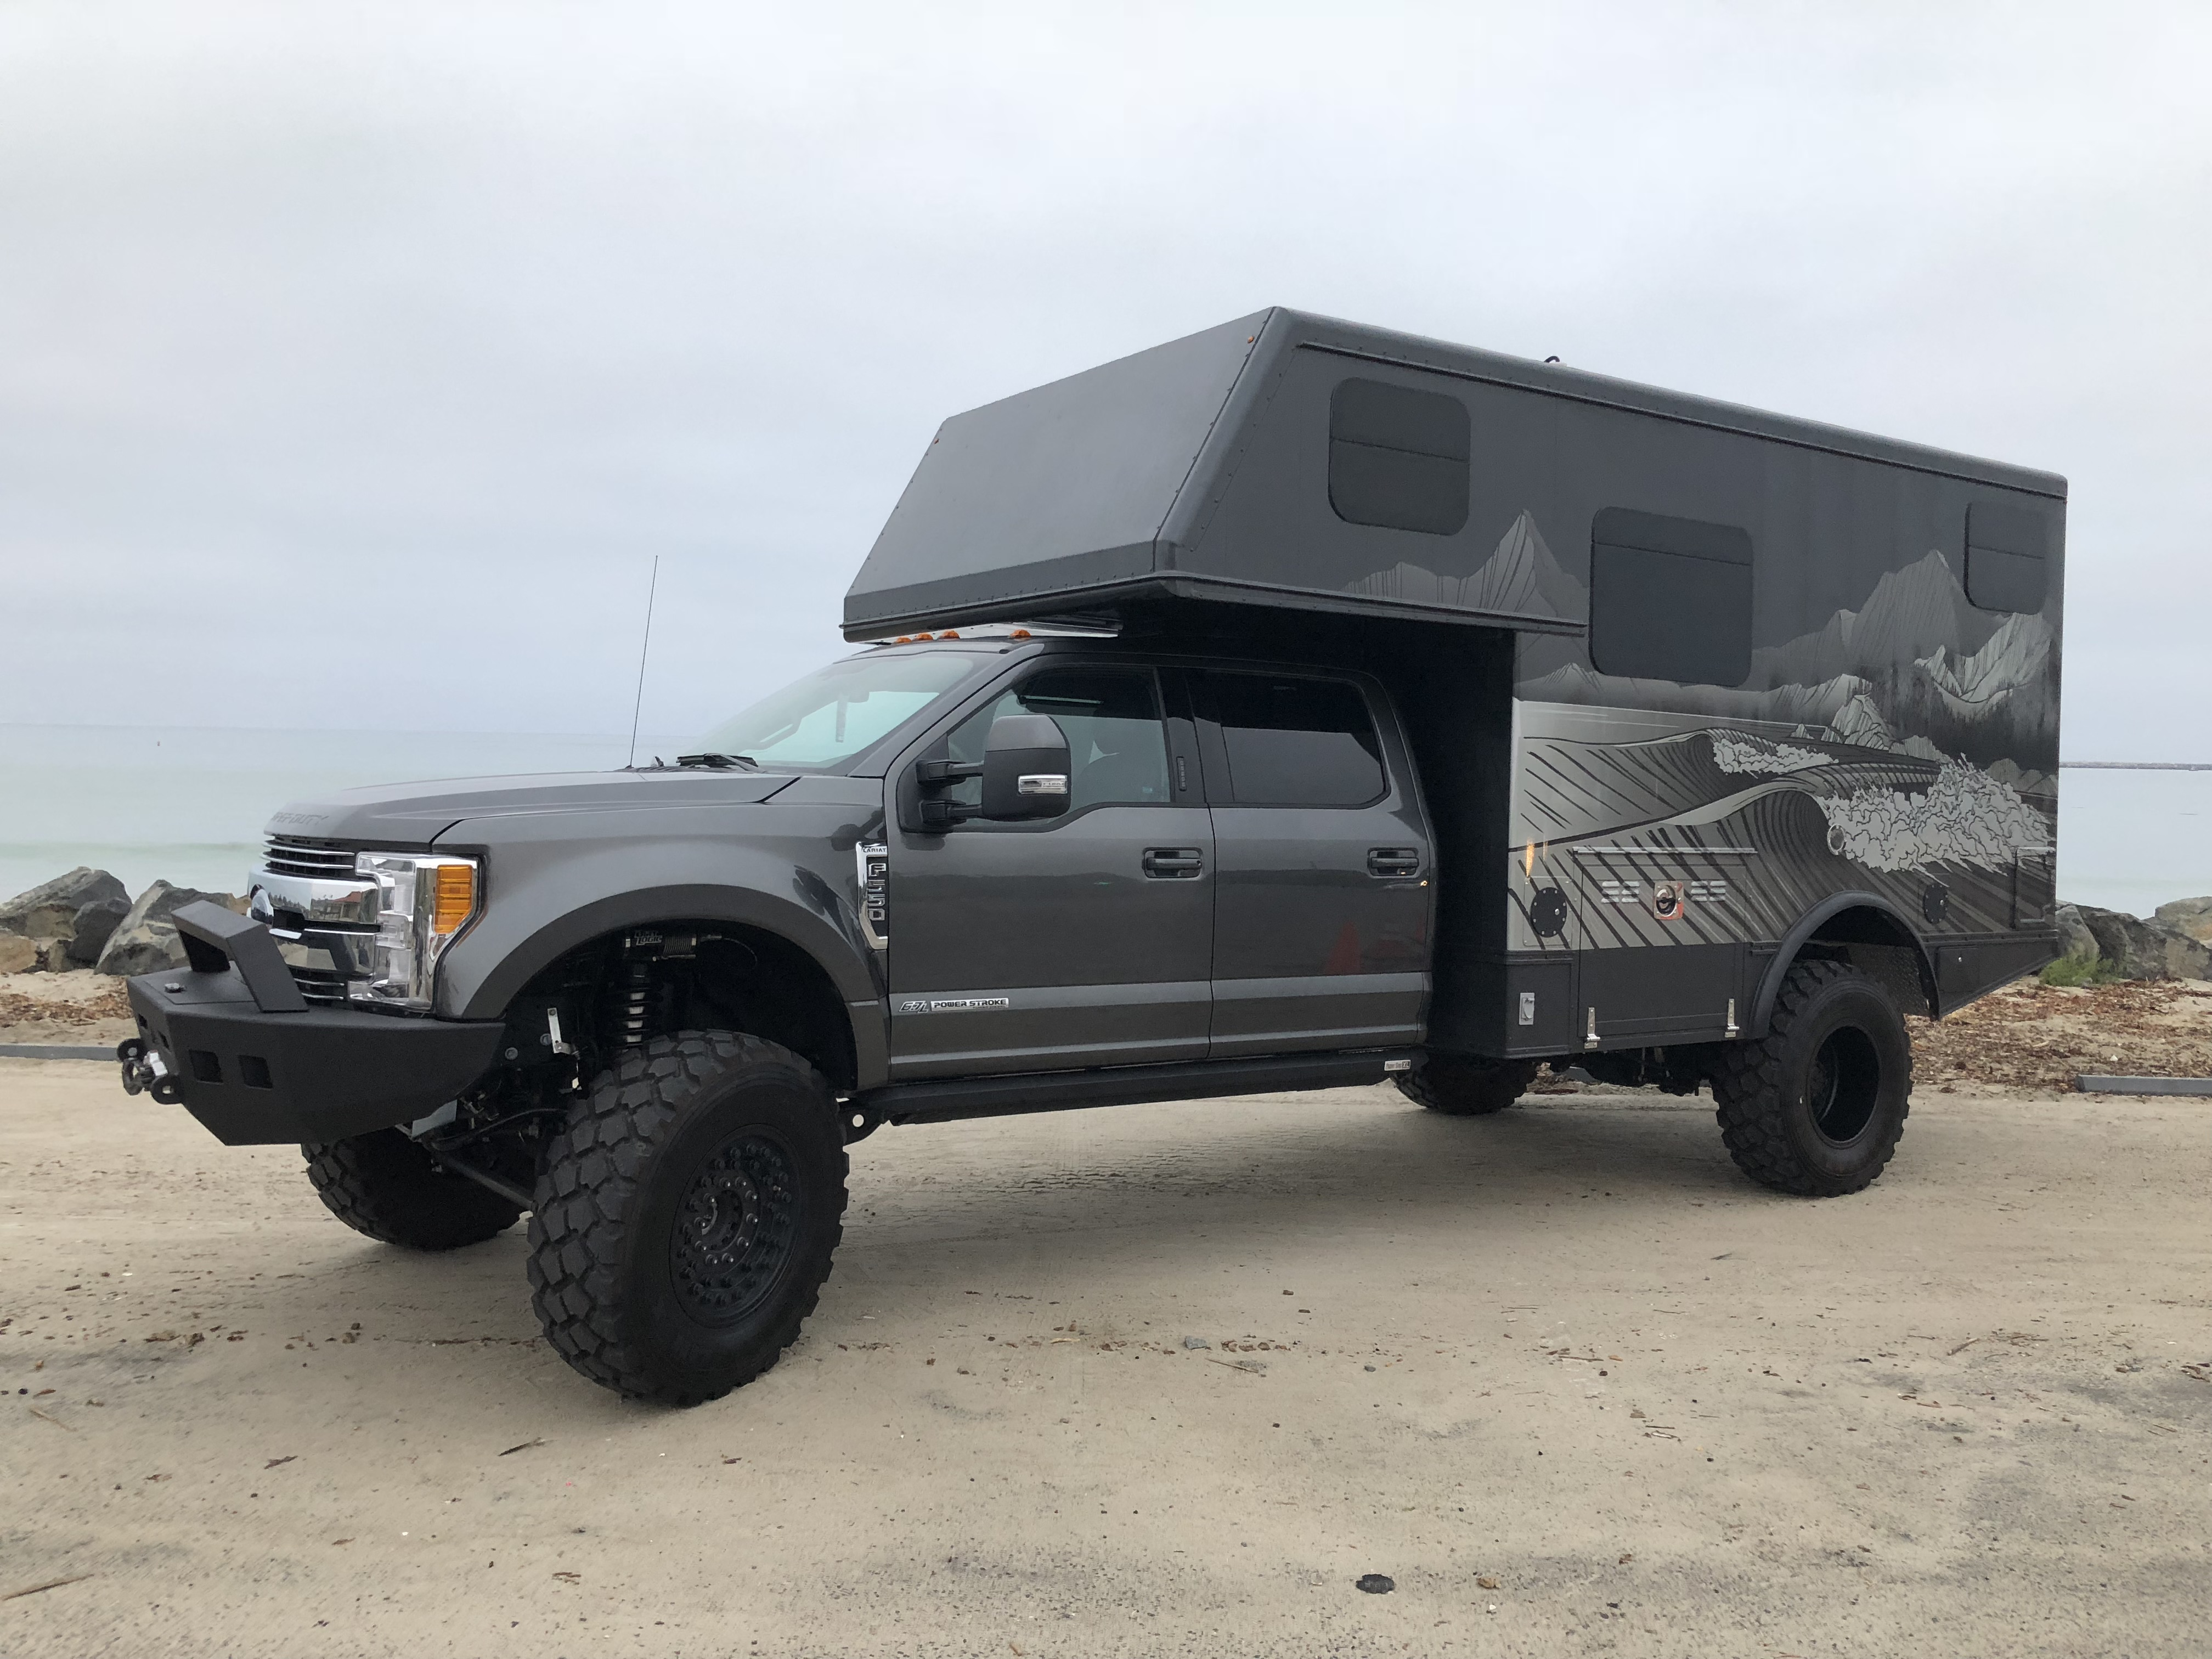 Best Overland Vehicles >> SOLD -Basecamp F550- Custom Expedition Overland Camper- Lots of Pics | Expedition Portal